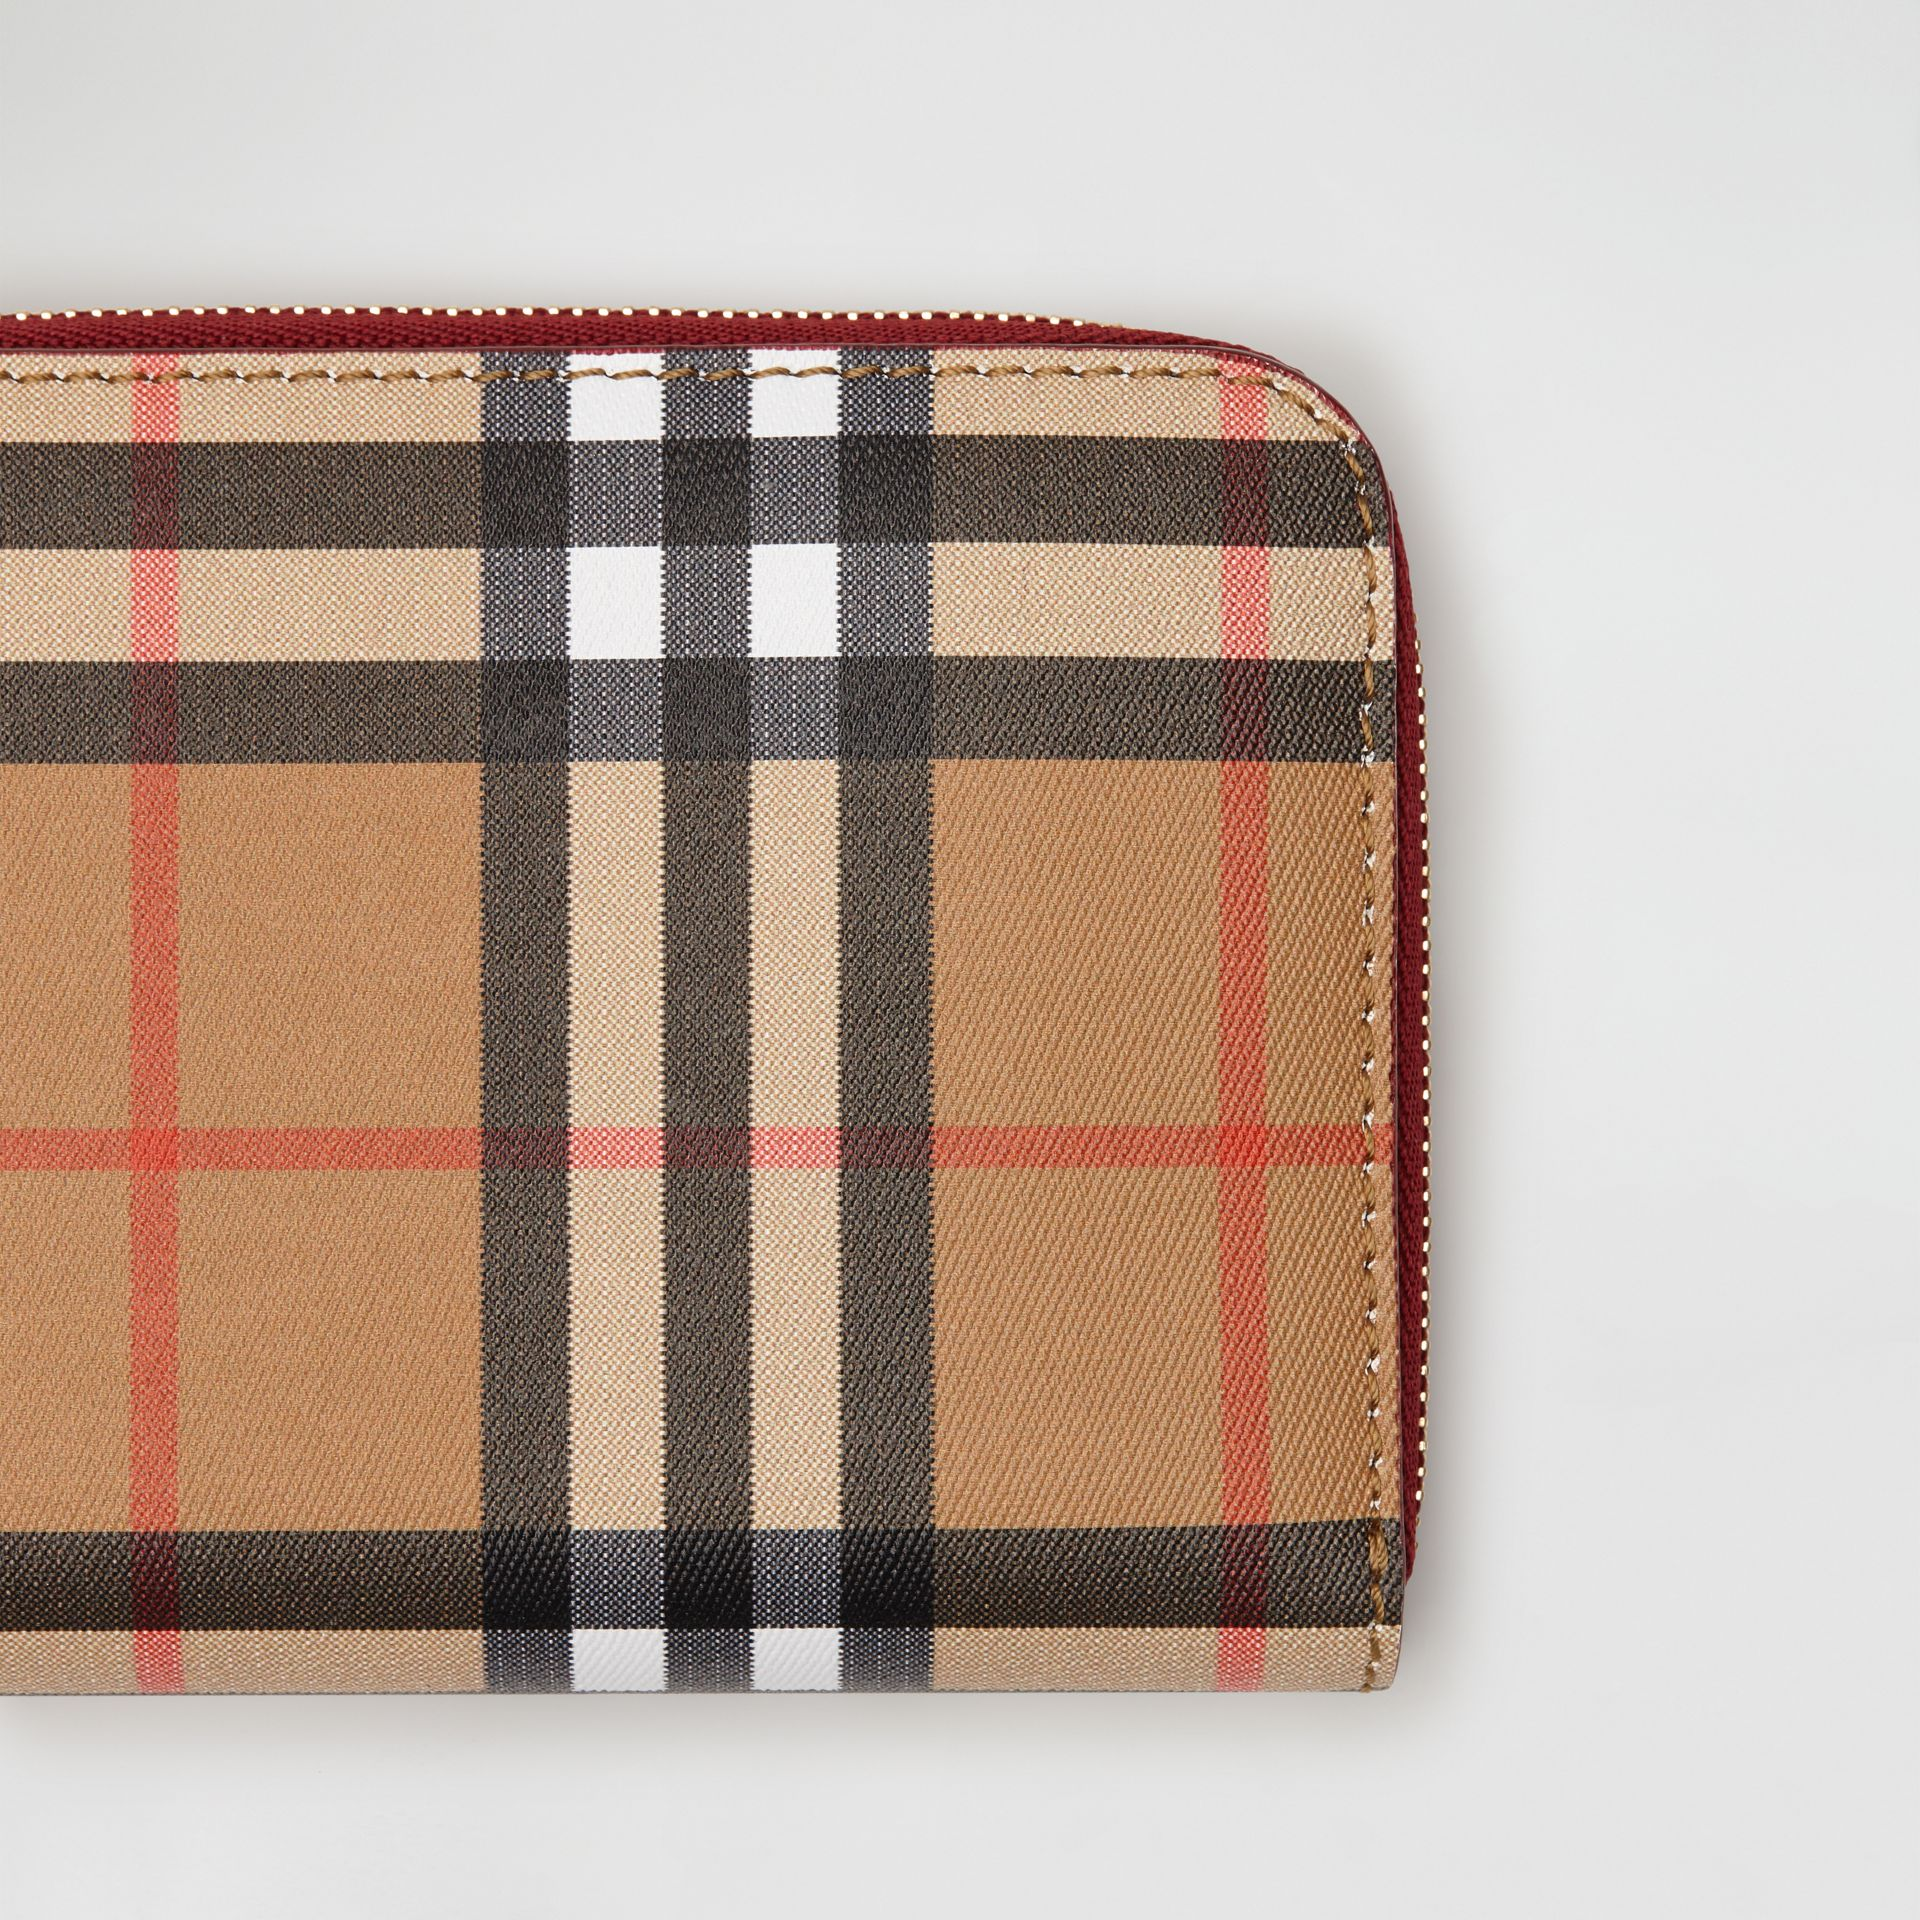 Vintage Check and Leather Ziparound Wallet in Crimson - Women | Burberry - gallery image 1